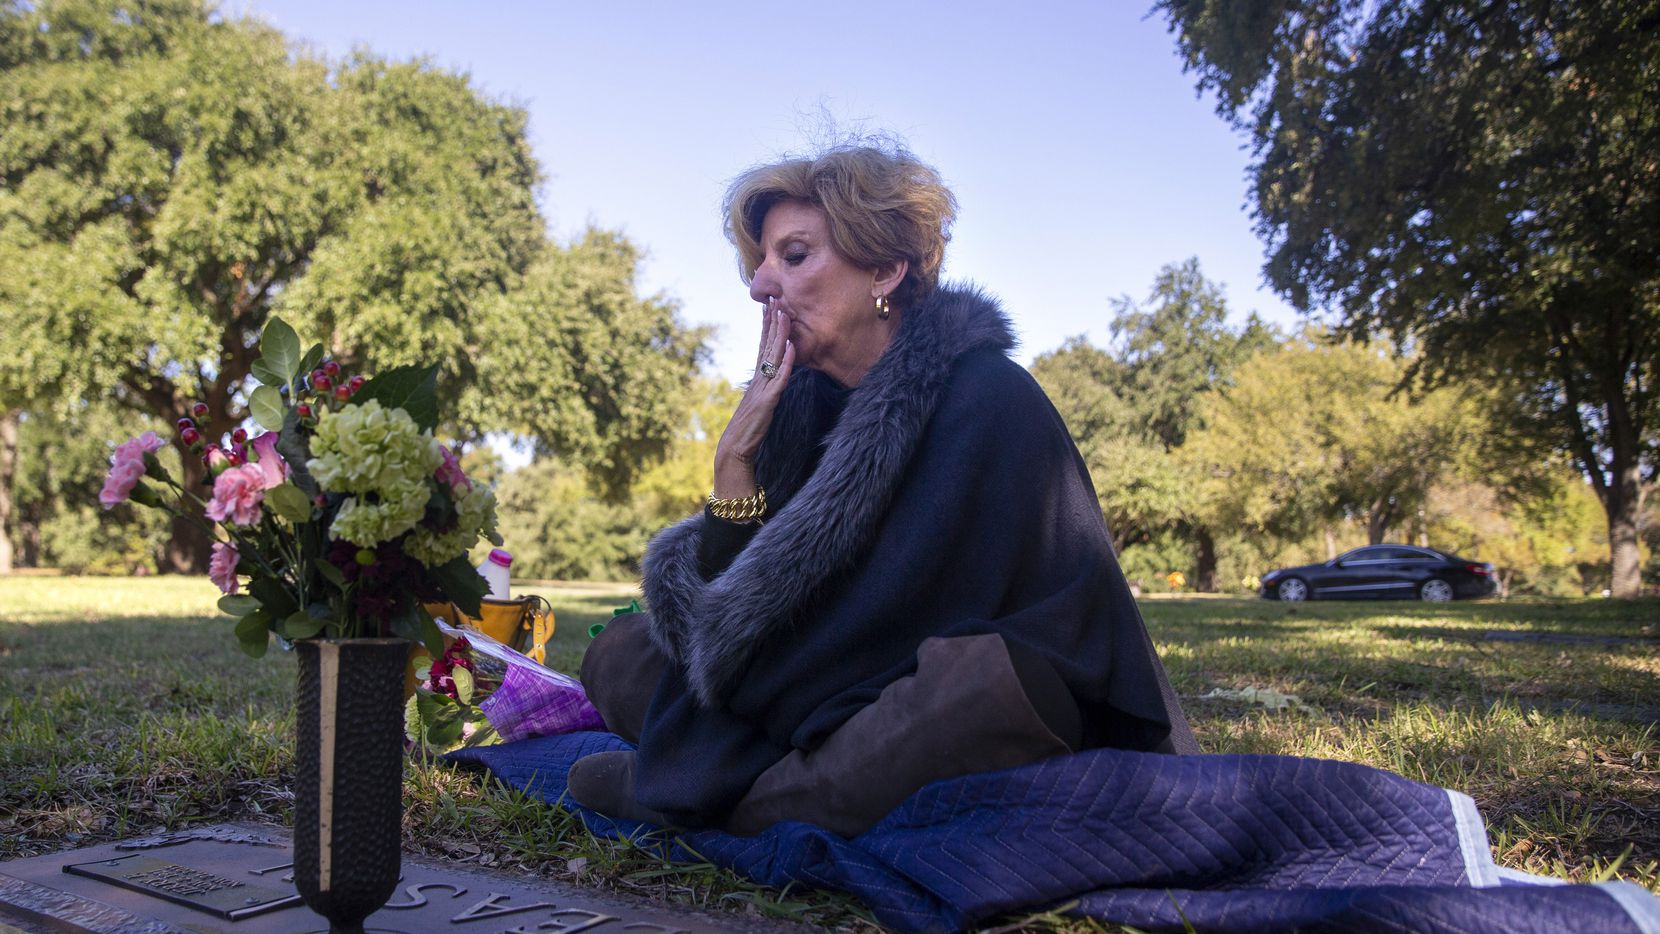 Shannon Dion kisses her parents' graves at Restland Memorial Park in Dallas on Oct. 31, 2019. She visits her parents' resting place once a month to freshen up the flowers and to speak with them. (Lynda M. Gonzalez/The Dallas Morning News)